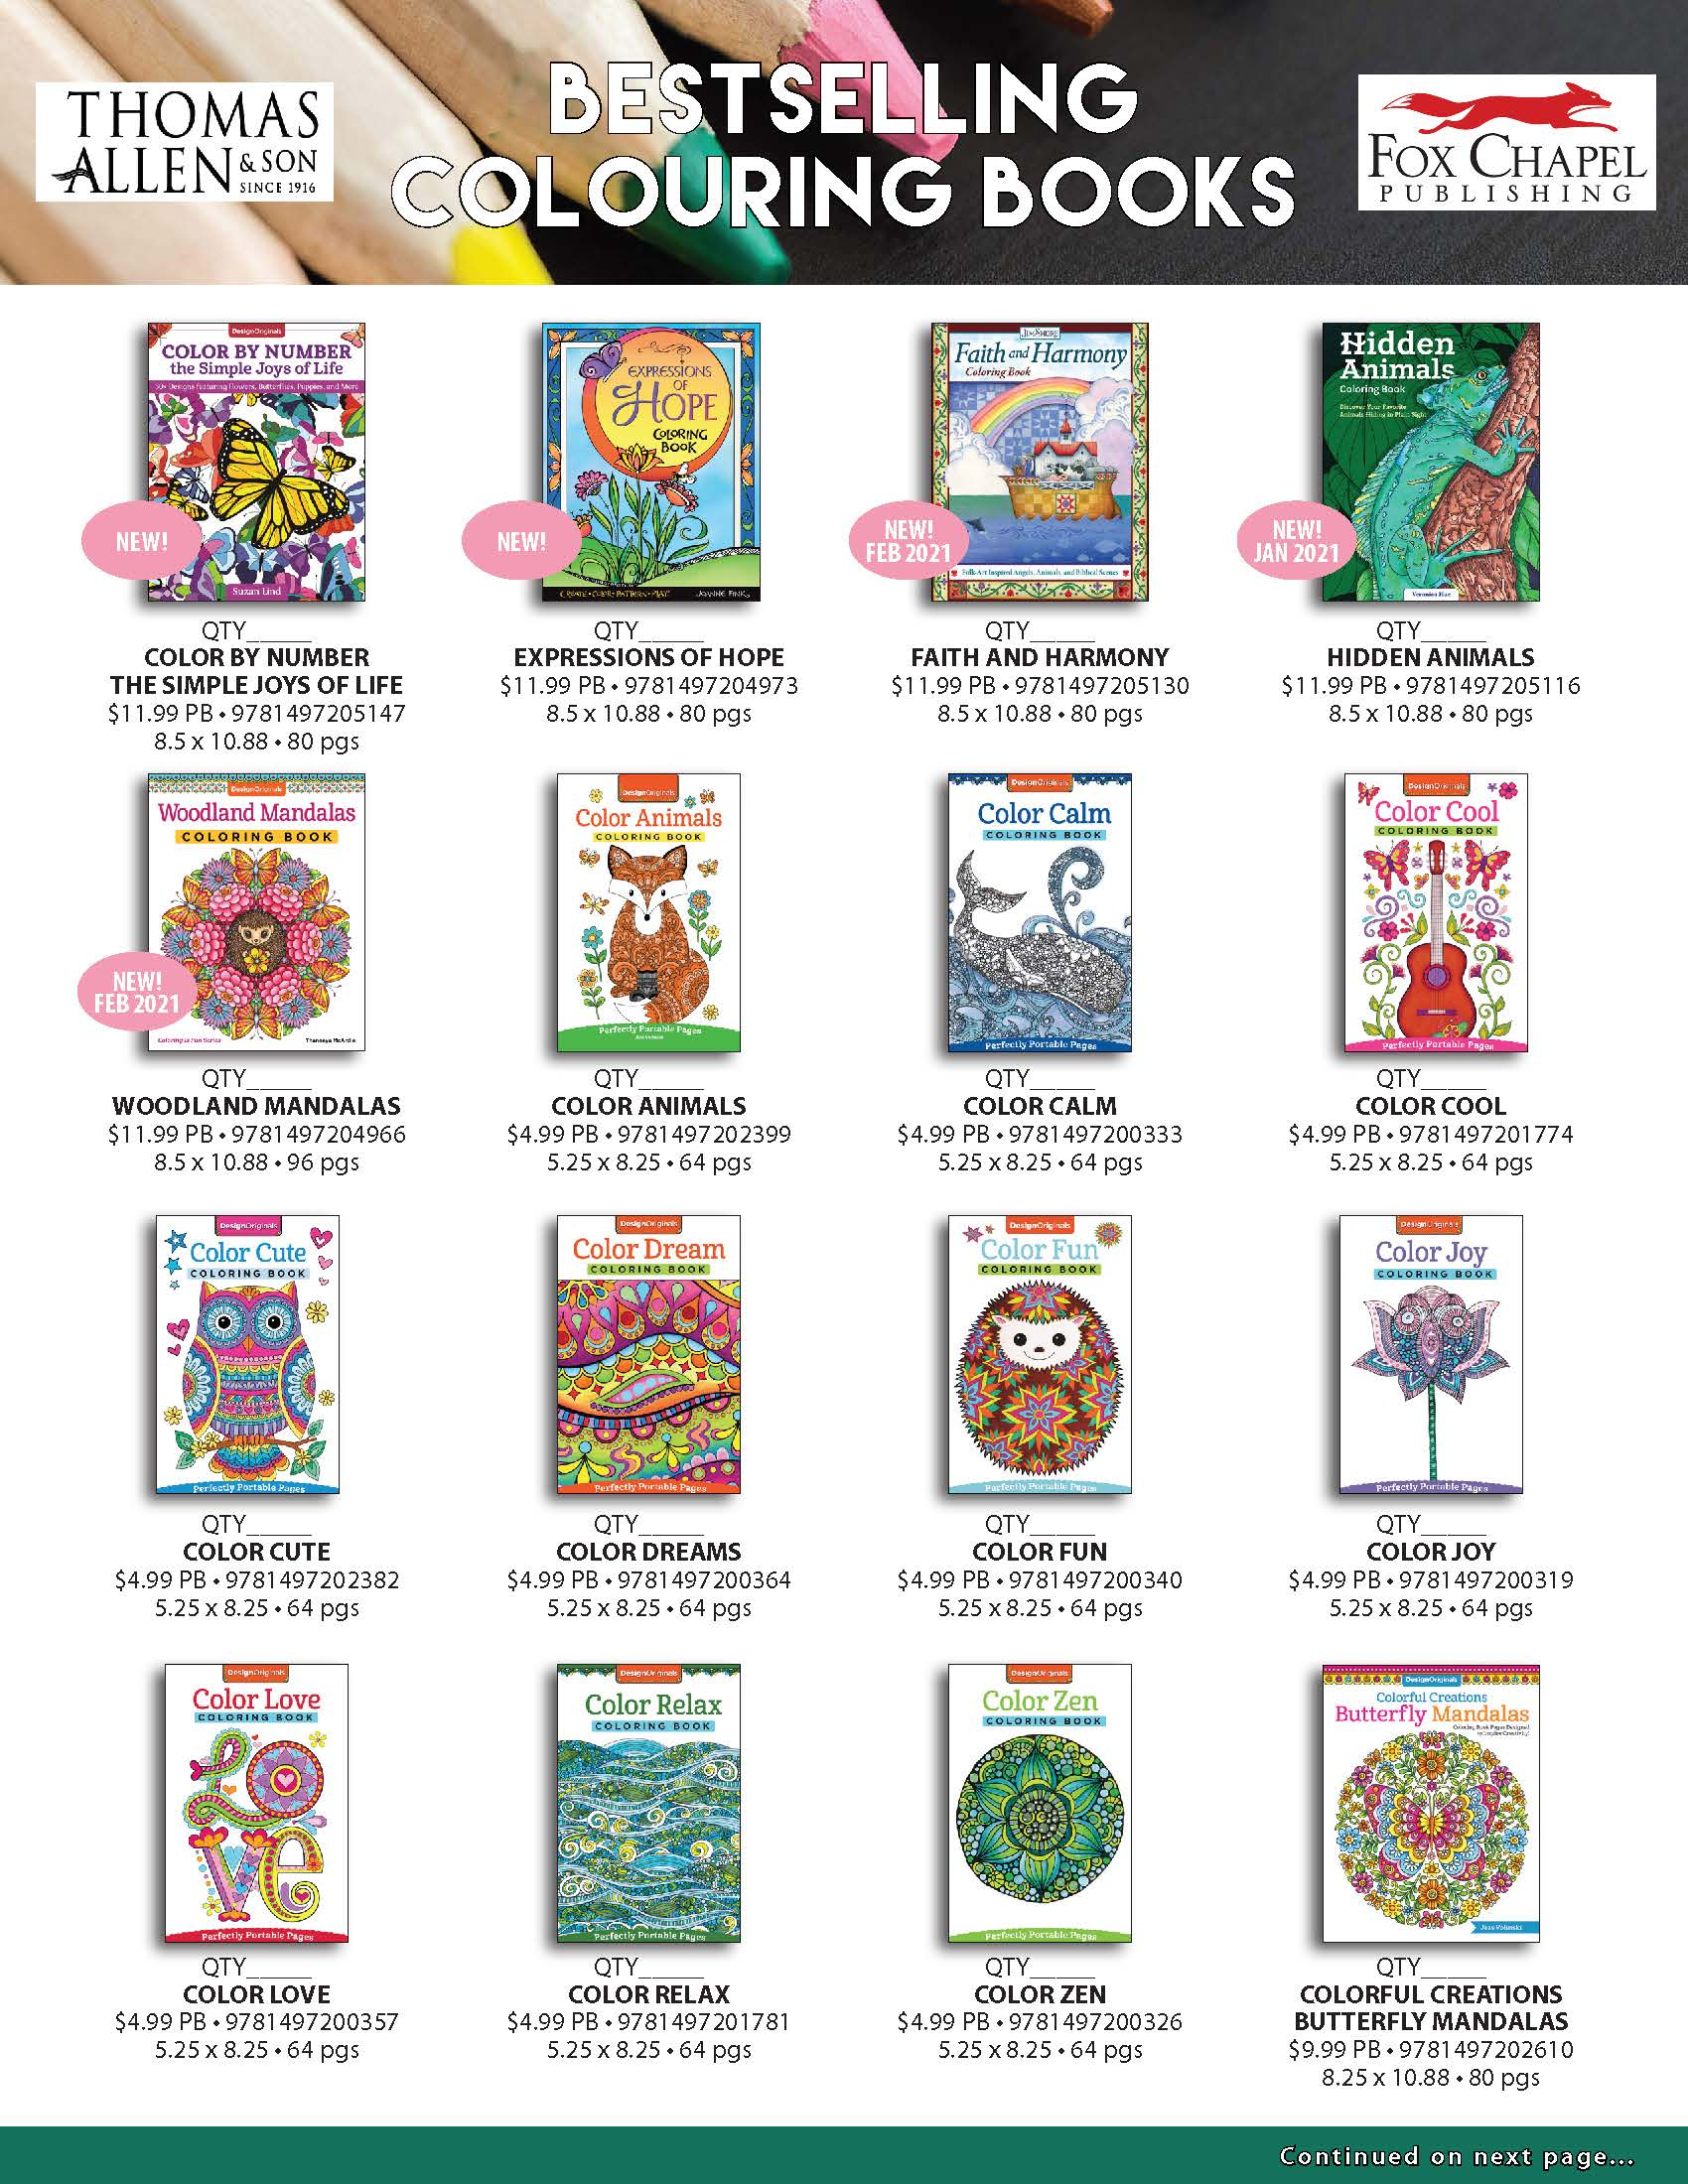 Bestselling Colouring Books